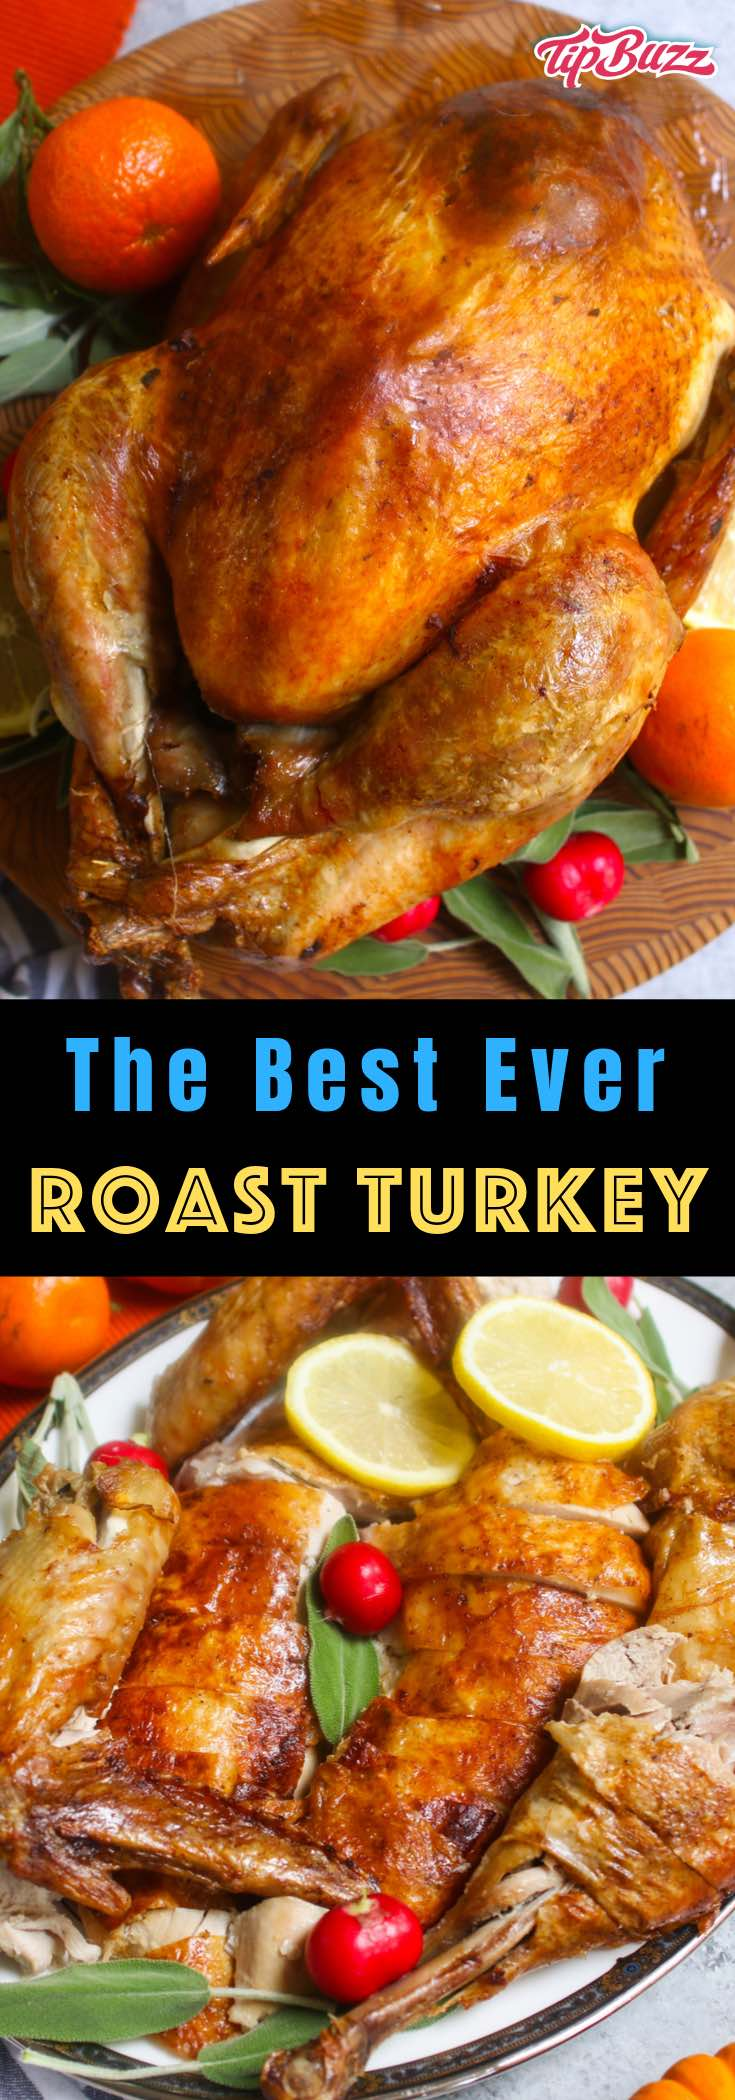 Learn how long to cook a turkey and get a perfectly cooked bird for your Thanksgiving or Christmas dinner! The rule of thumb is 15 minutes per pound, but the cooking time also depends on oven temperature, whether the turkey is stuffed or unstuffed, and fresh vs. frozen.